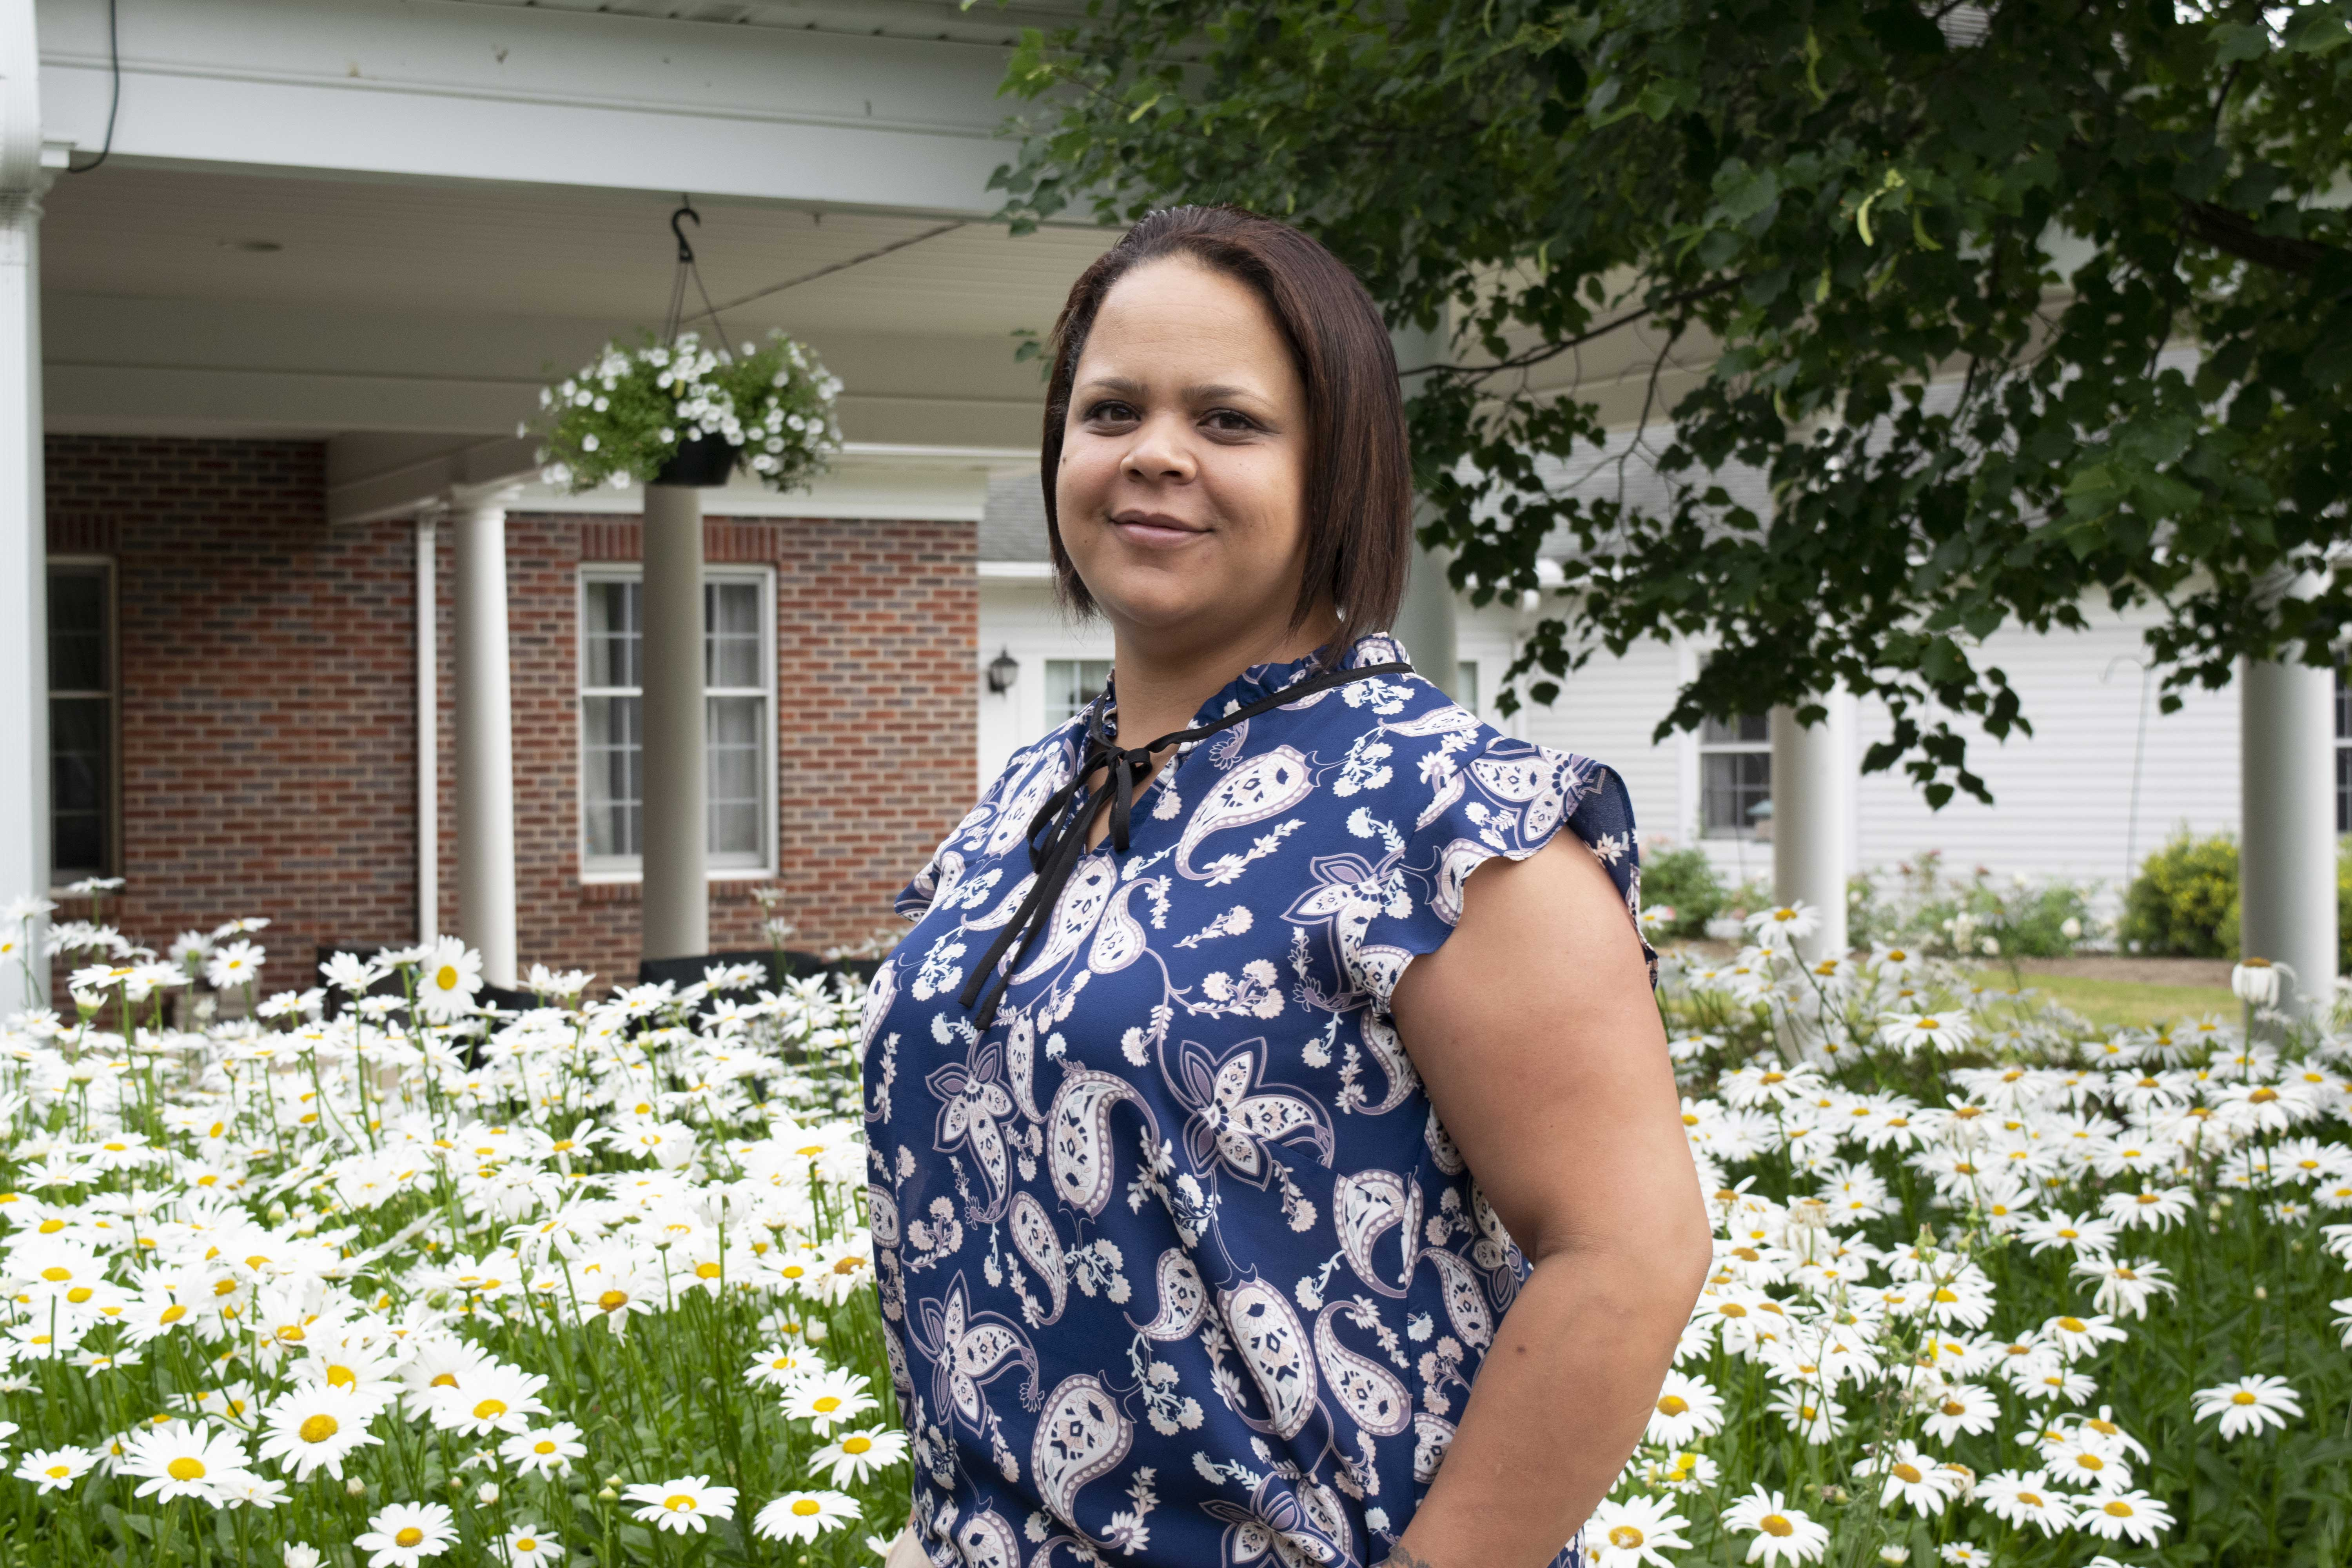 With Over a Decade of Service, Evelyn Suarez is Promoted to Administrator of Heather Heights